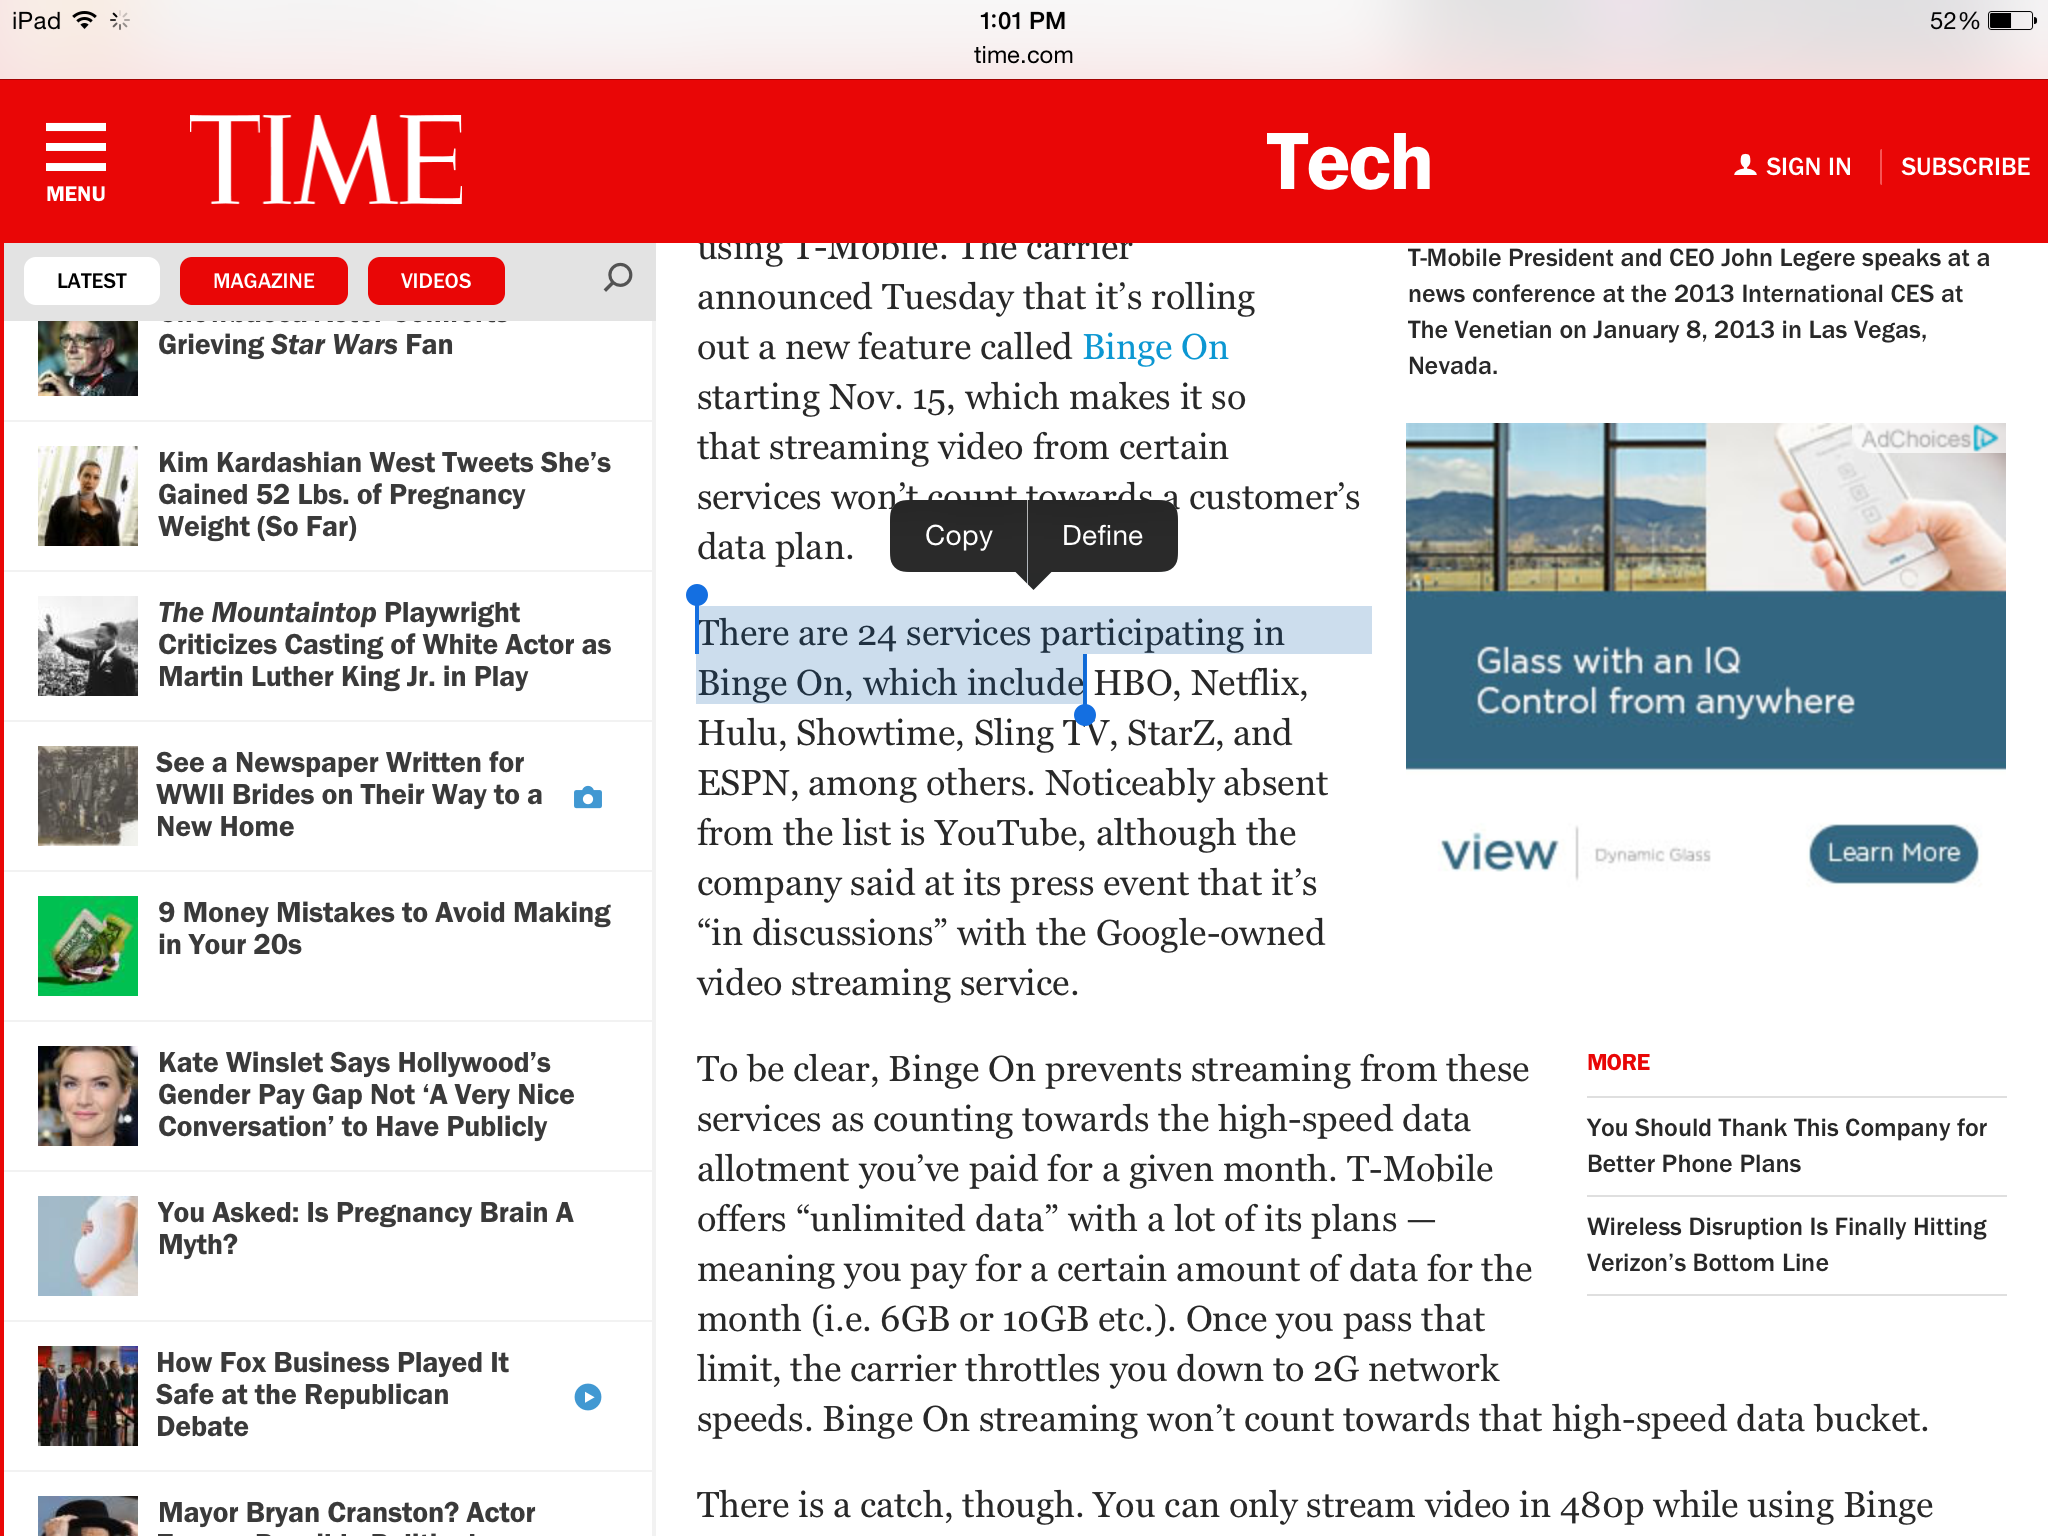 Apple iPad: 14 Tips, Tricks and Hidden Features | Time